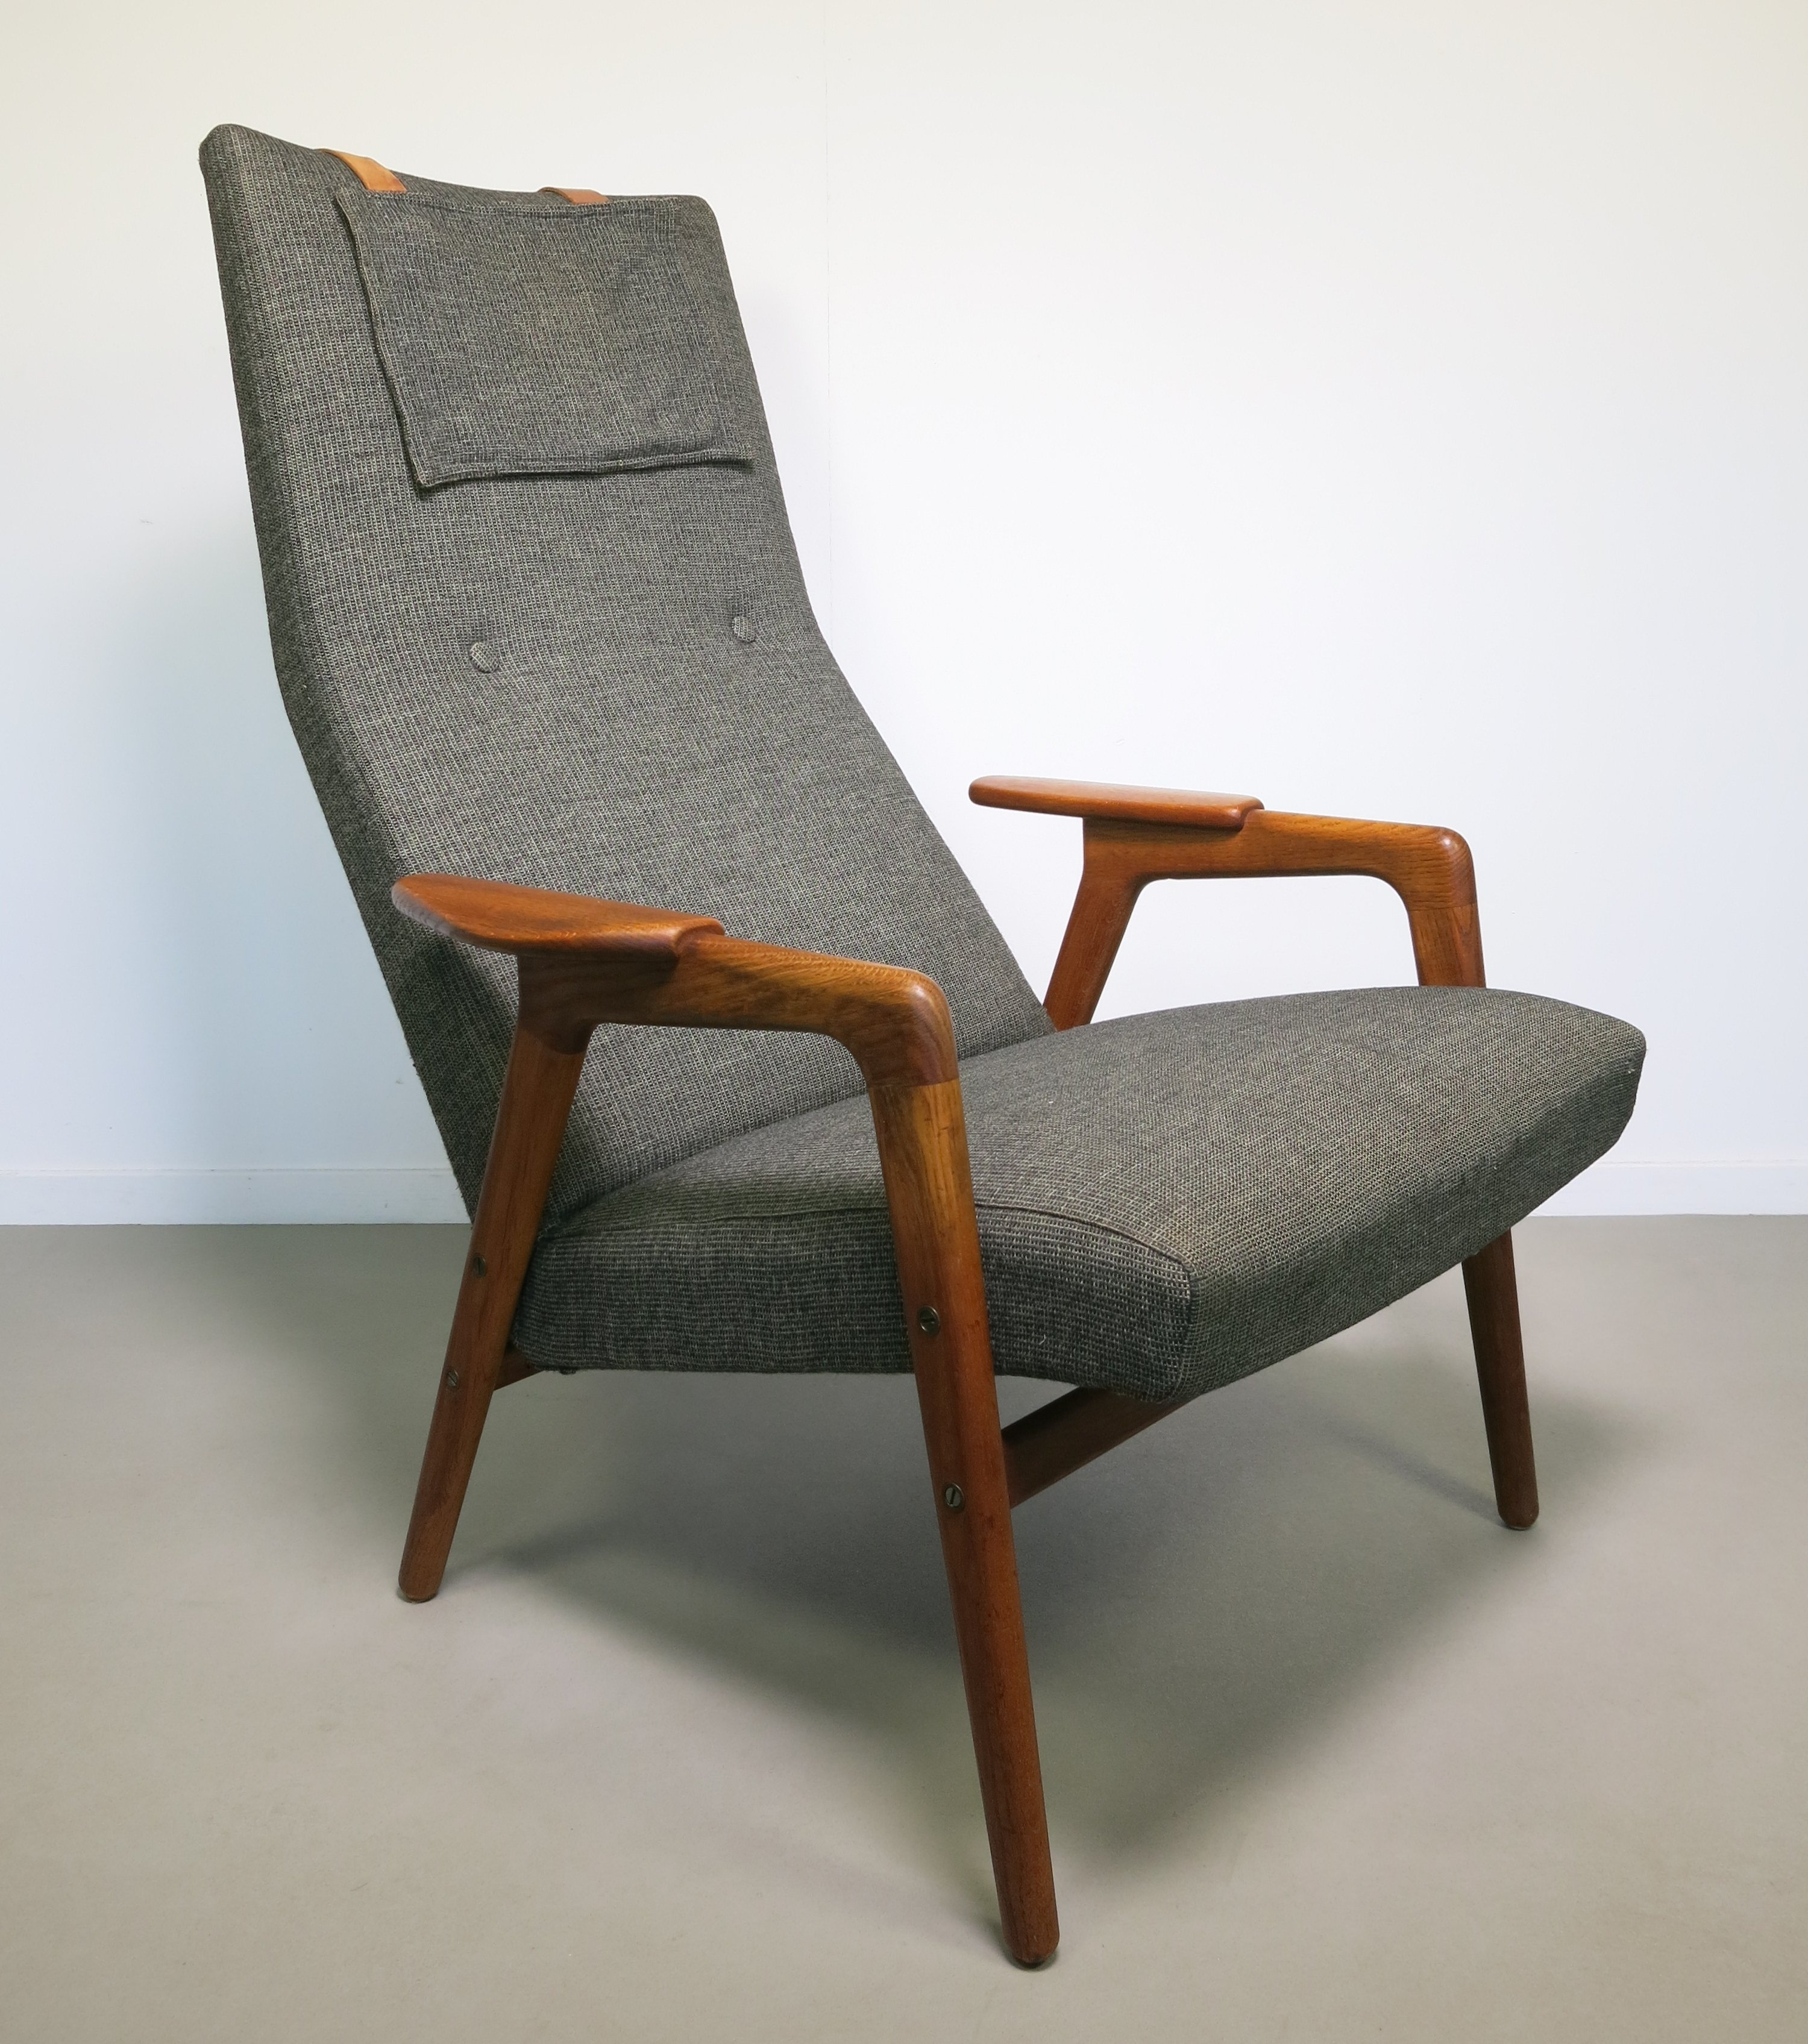 Ruster lounge chair by Yngve Ekström for Swedese, 1950s #56120